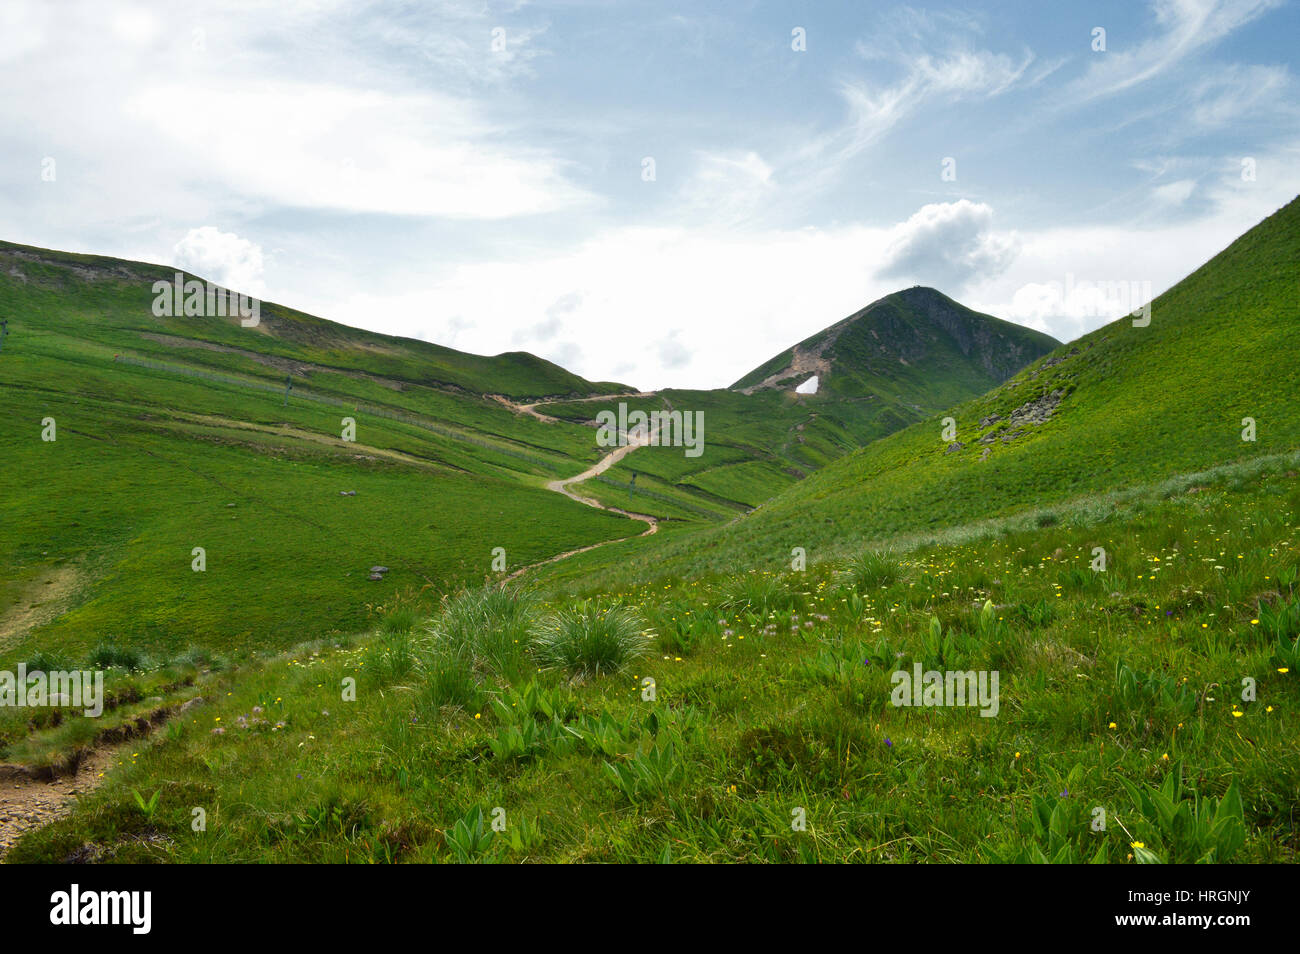 The mountains of Sancy in the center of France, Auvergne. - Stock Image